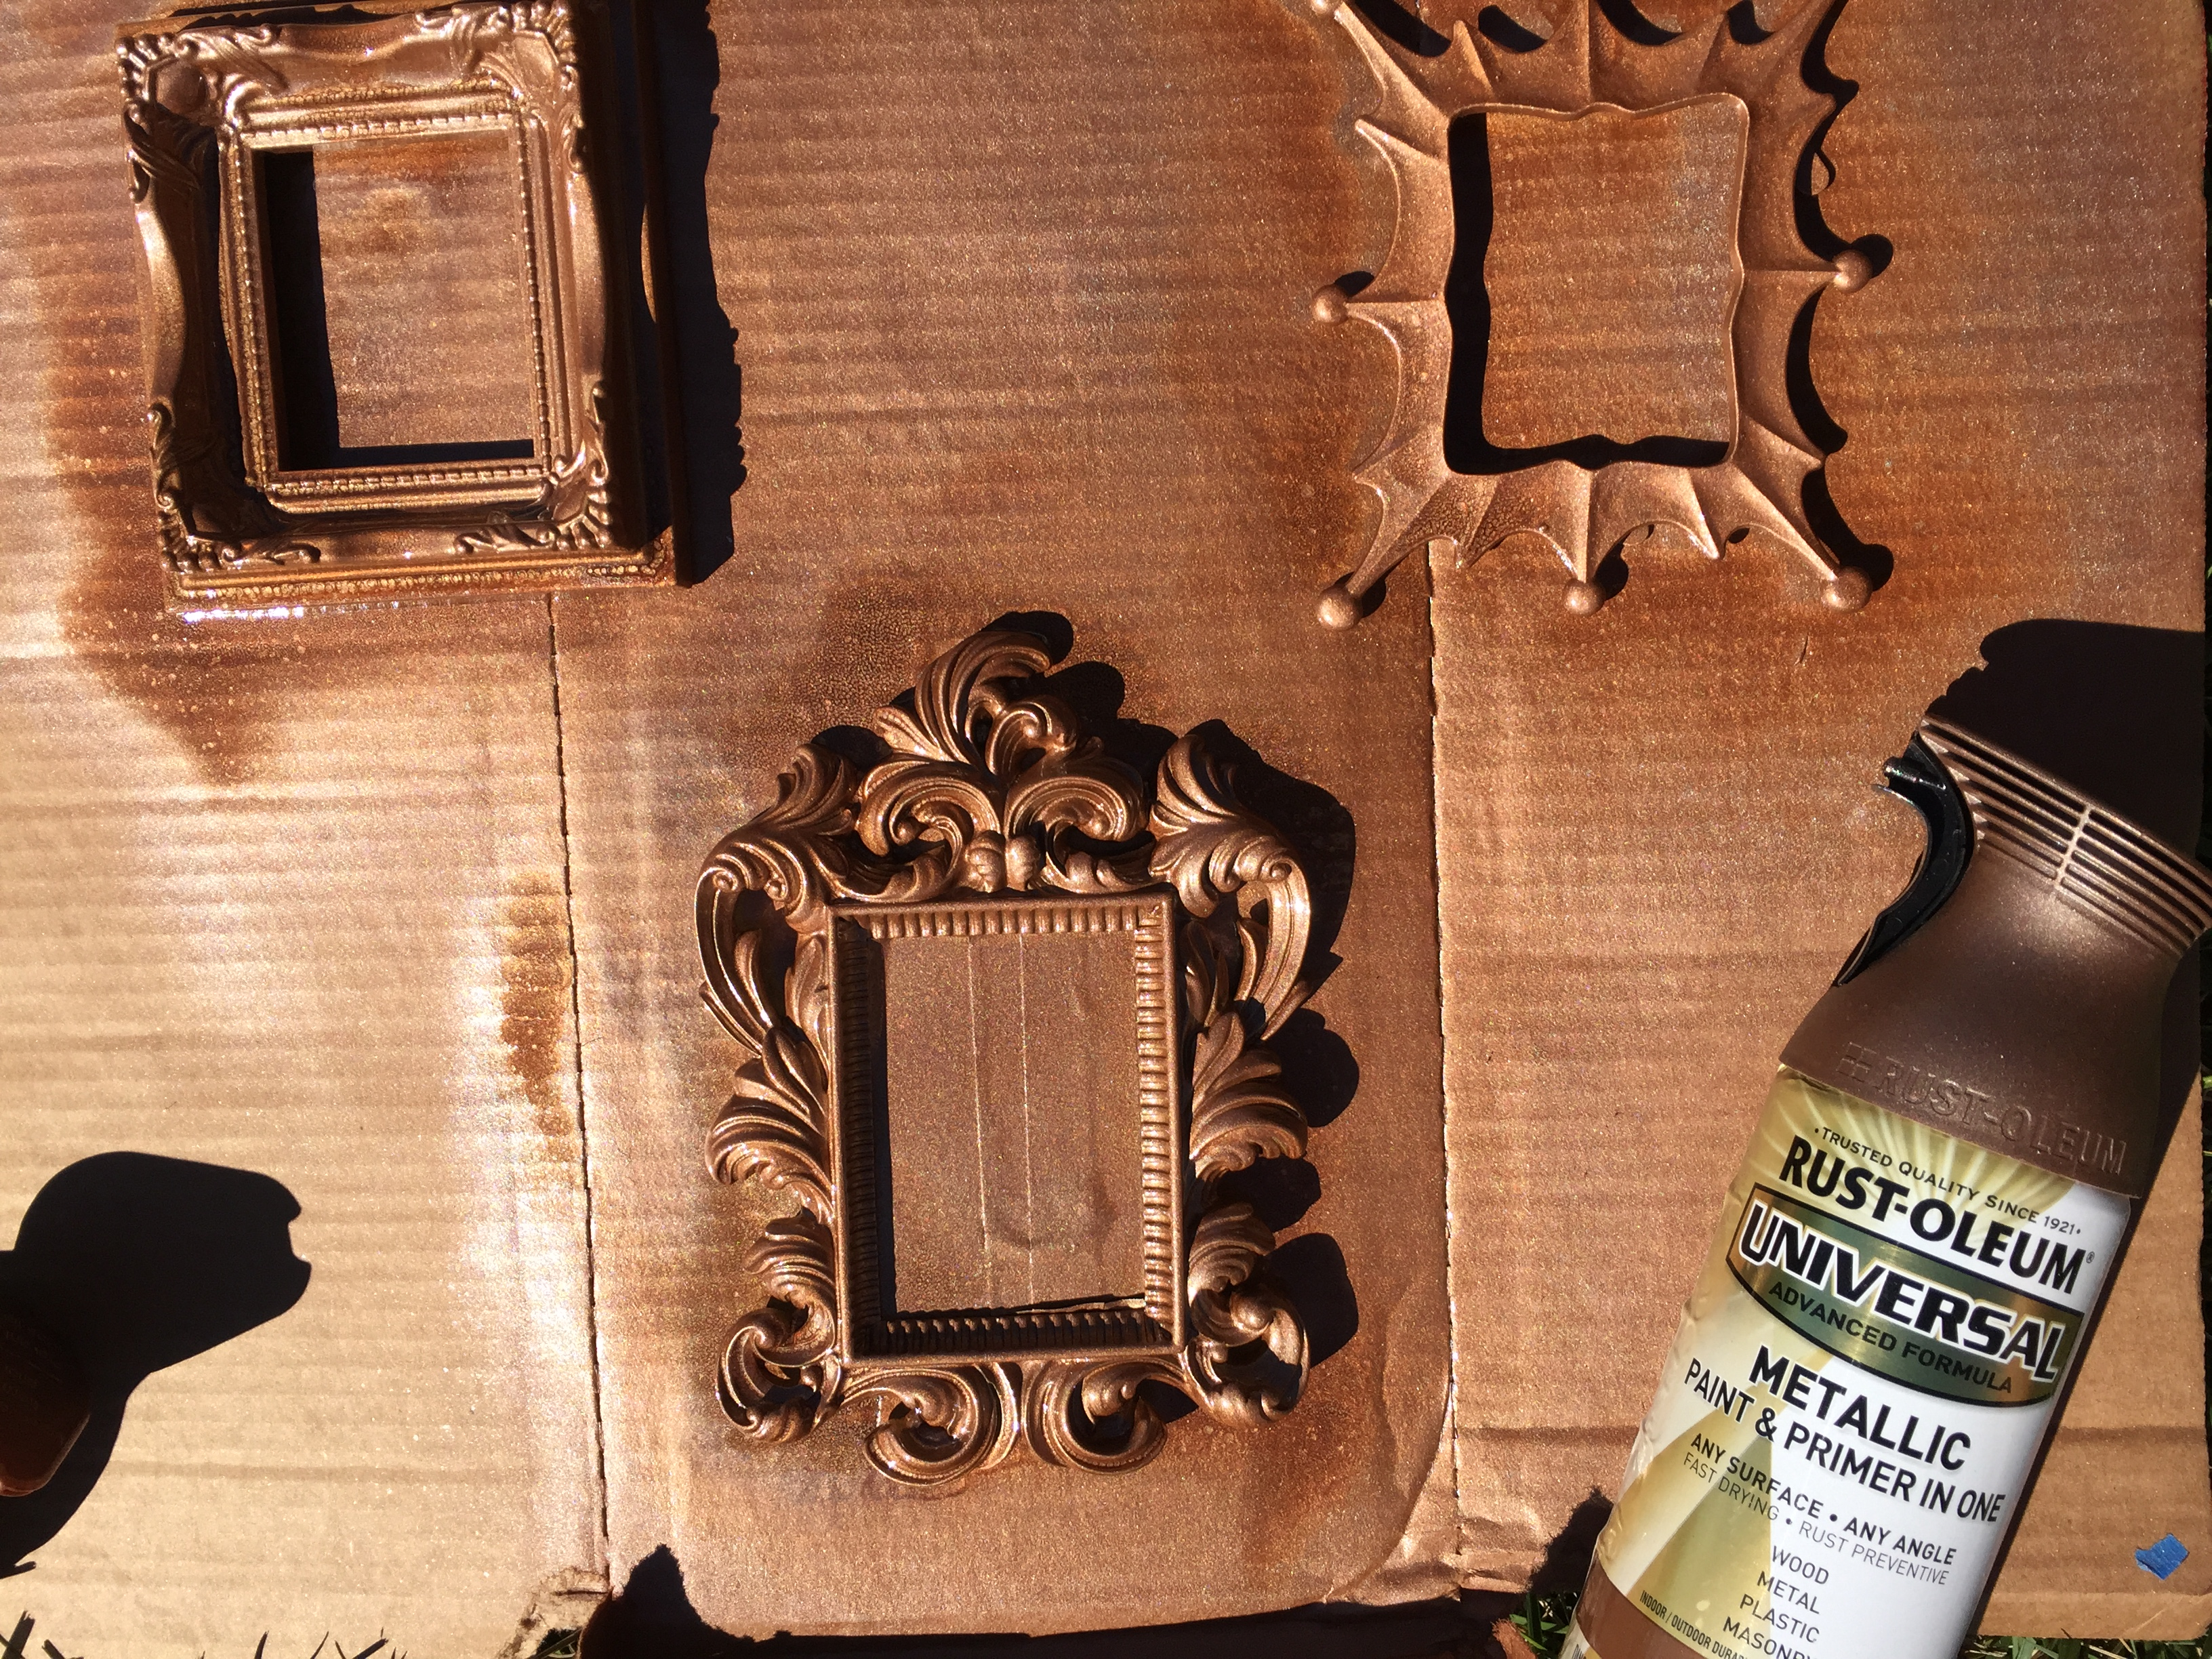 Step 3: Make sure you're working in a well ventilated area before spraying frames. If so, spray an even coat of your favorite color of metallic spray paint and primer in one. I LOVE this spray paint because it applies evenly and never requires a second coat. Easy!